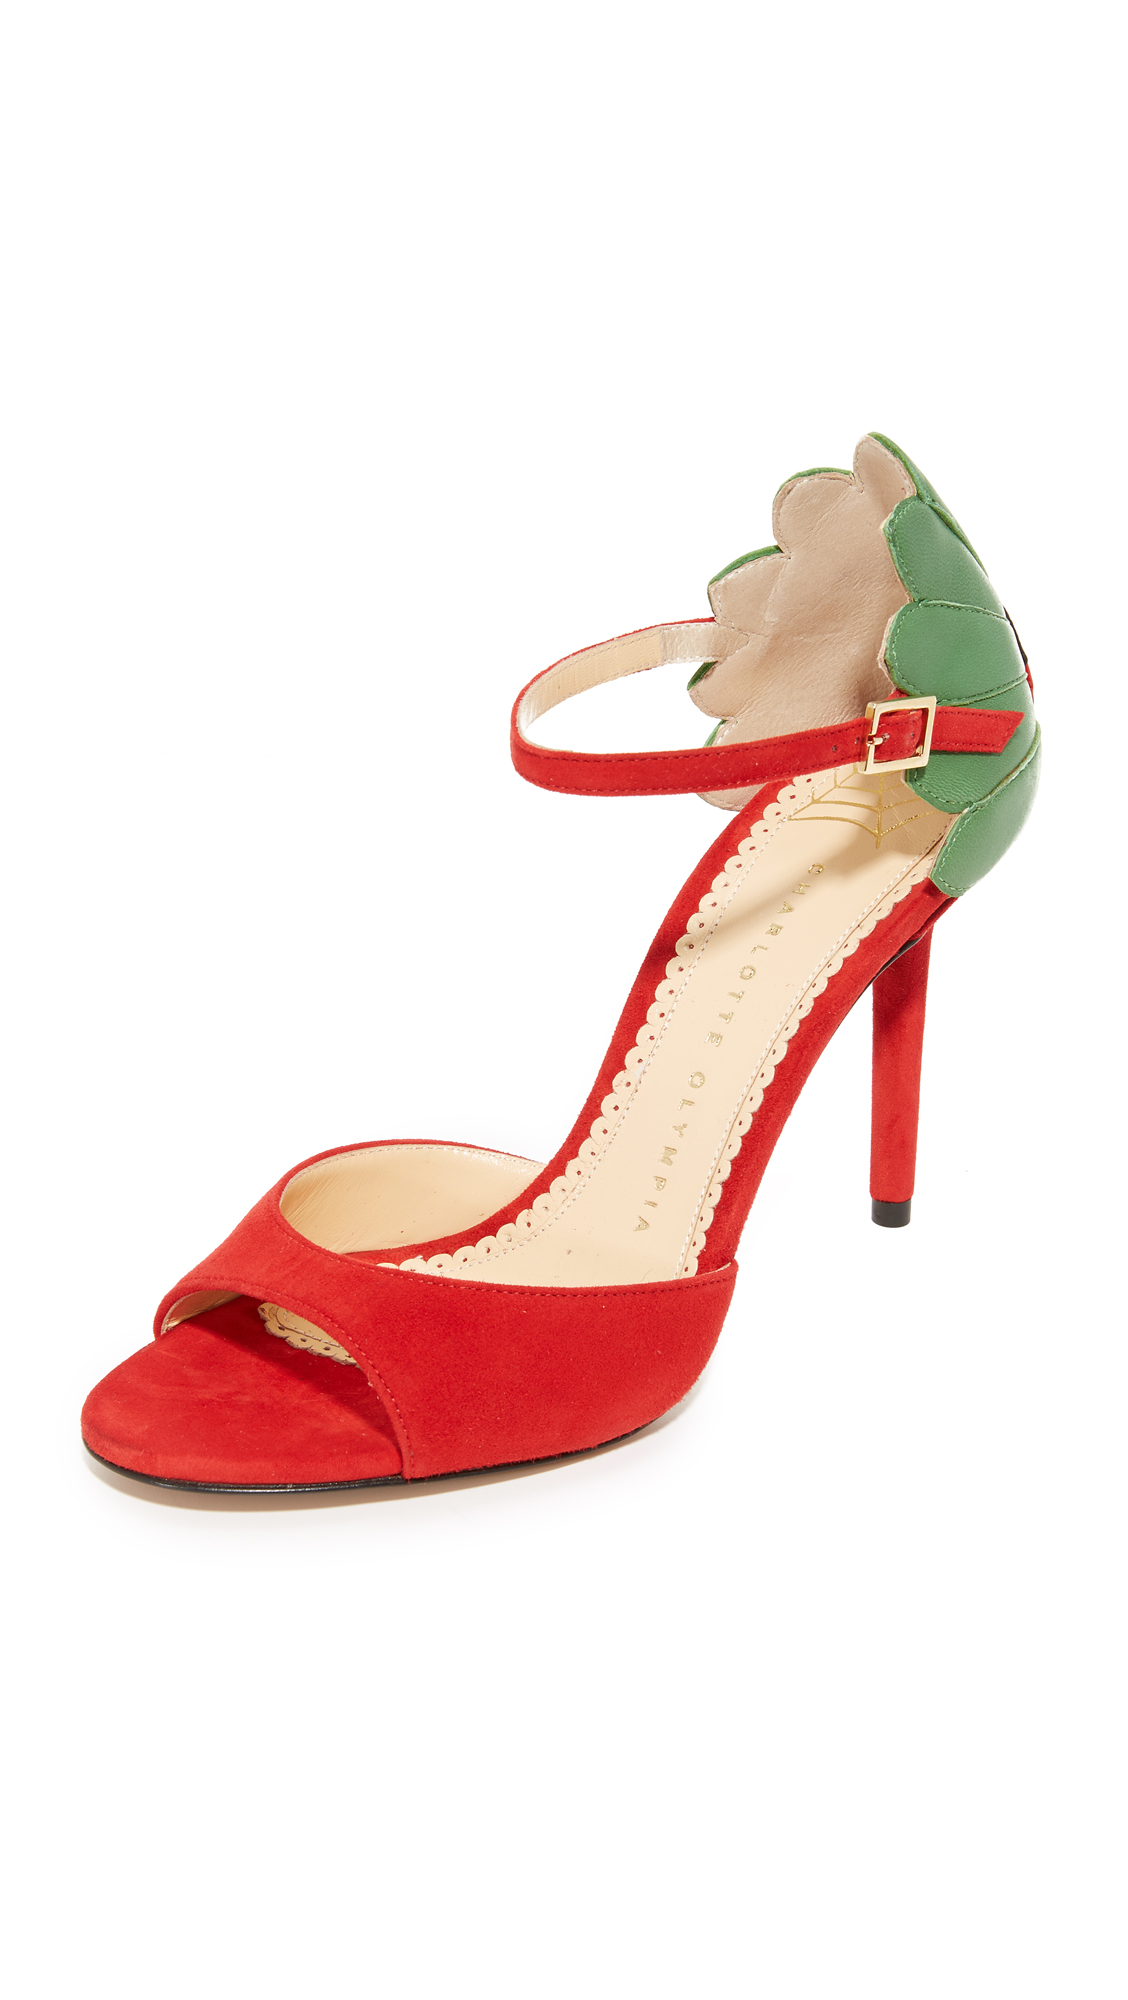 Charlotte Olympia Marge Leaf Sandals - Real Red/Verdant Green